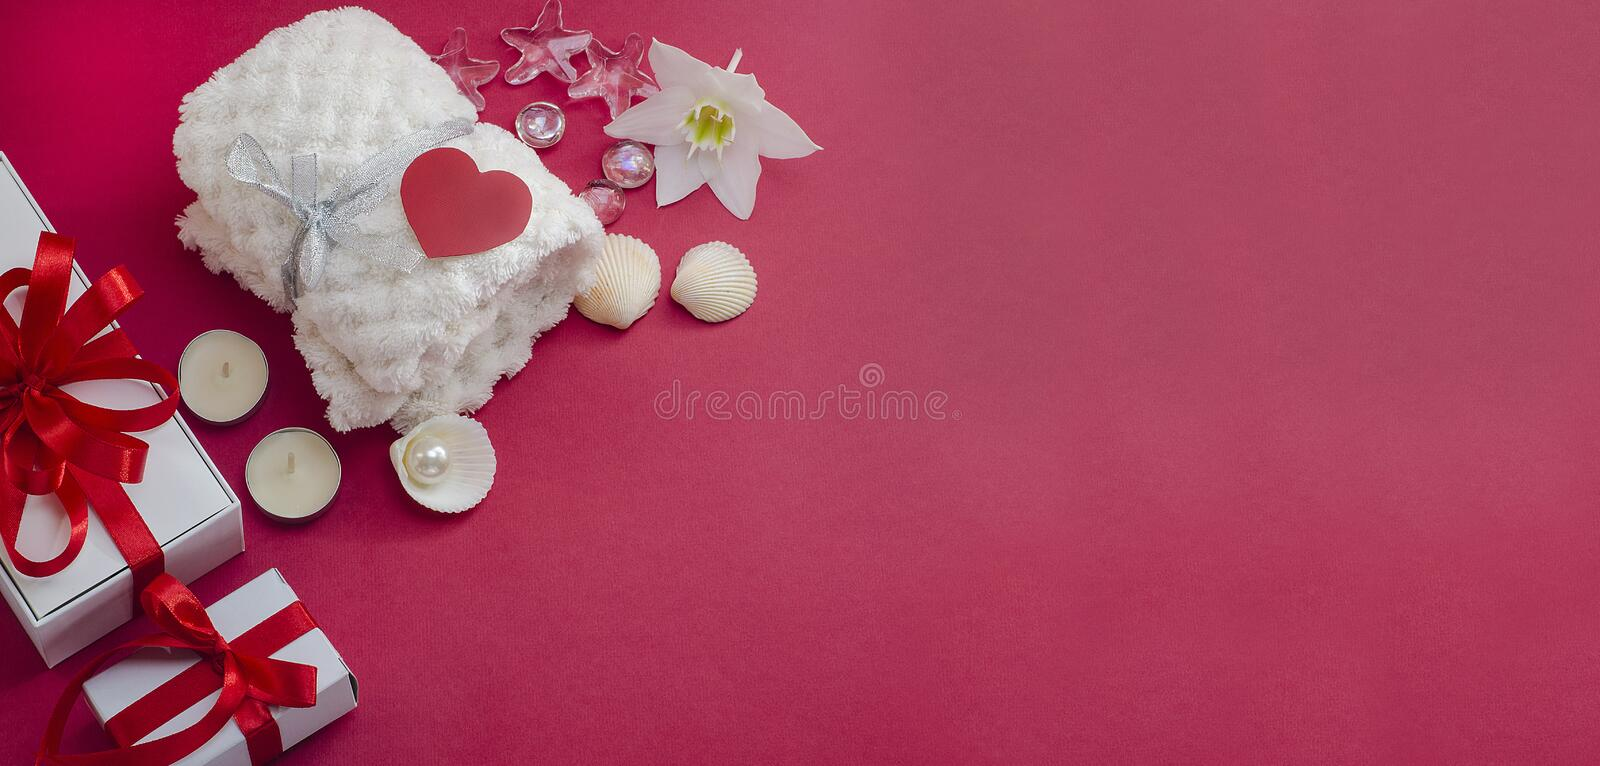 Spa treatments for Valentine`s Day. White towel with flower, shells and a pearl on a red background with a heart and gifts. Beaut. Spa treatments as a gift for stock photo